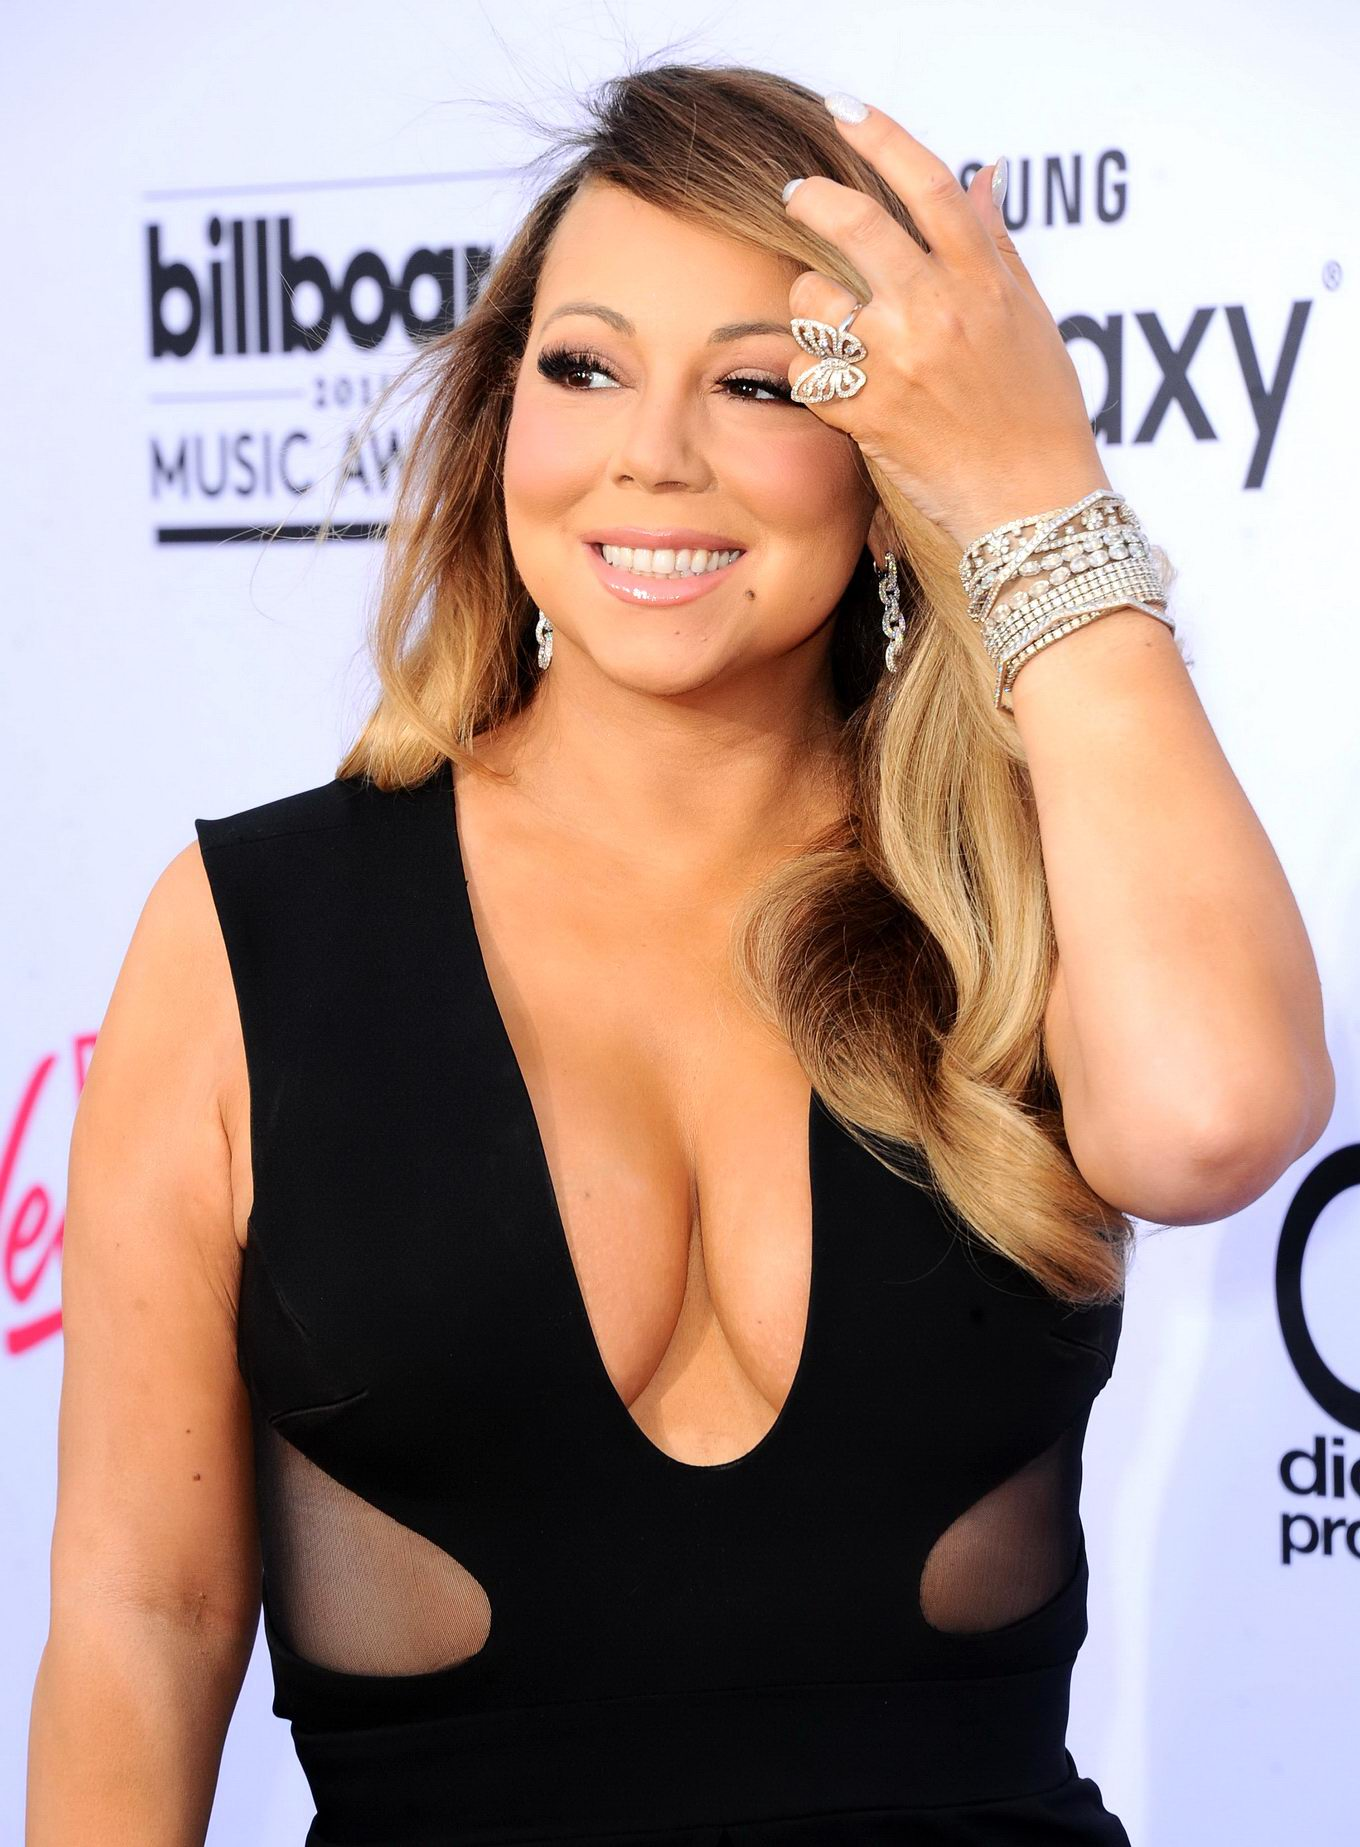 Mariah carey big cleavage accept